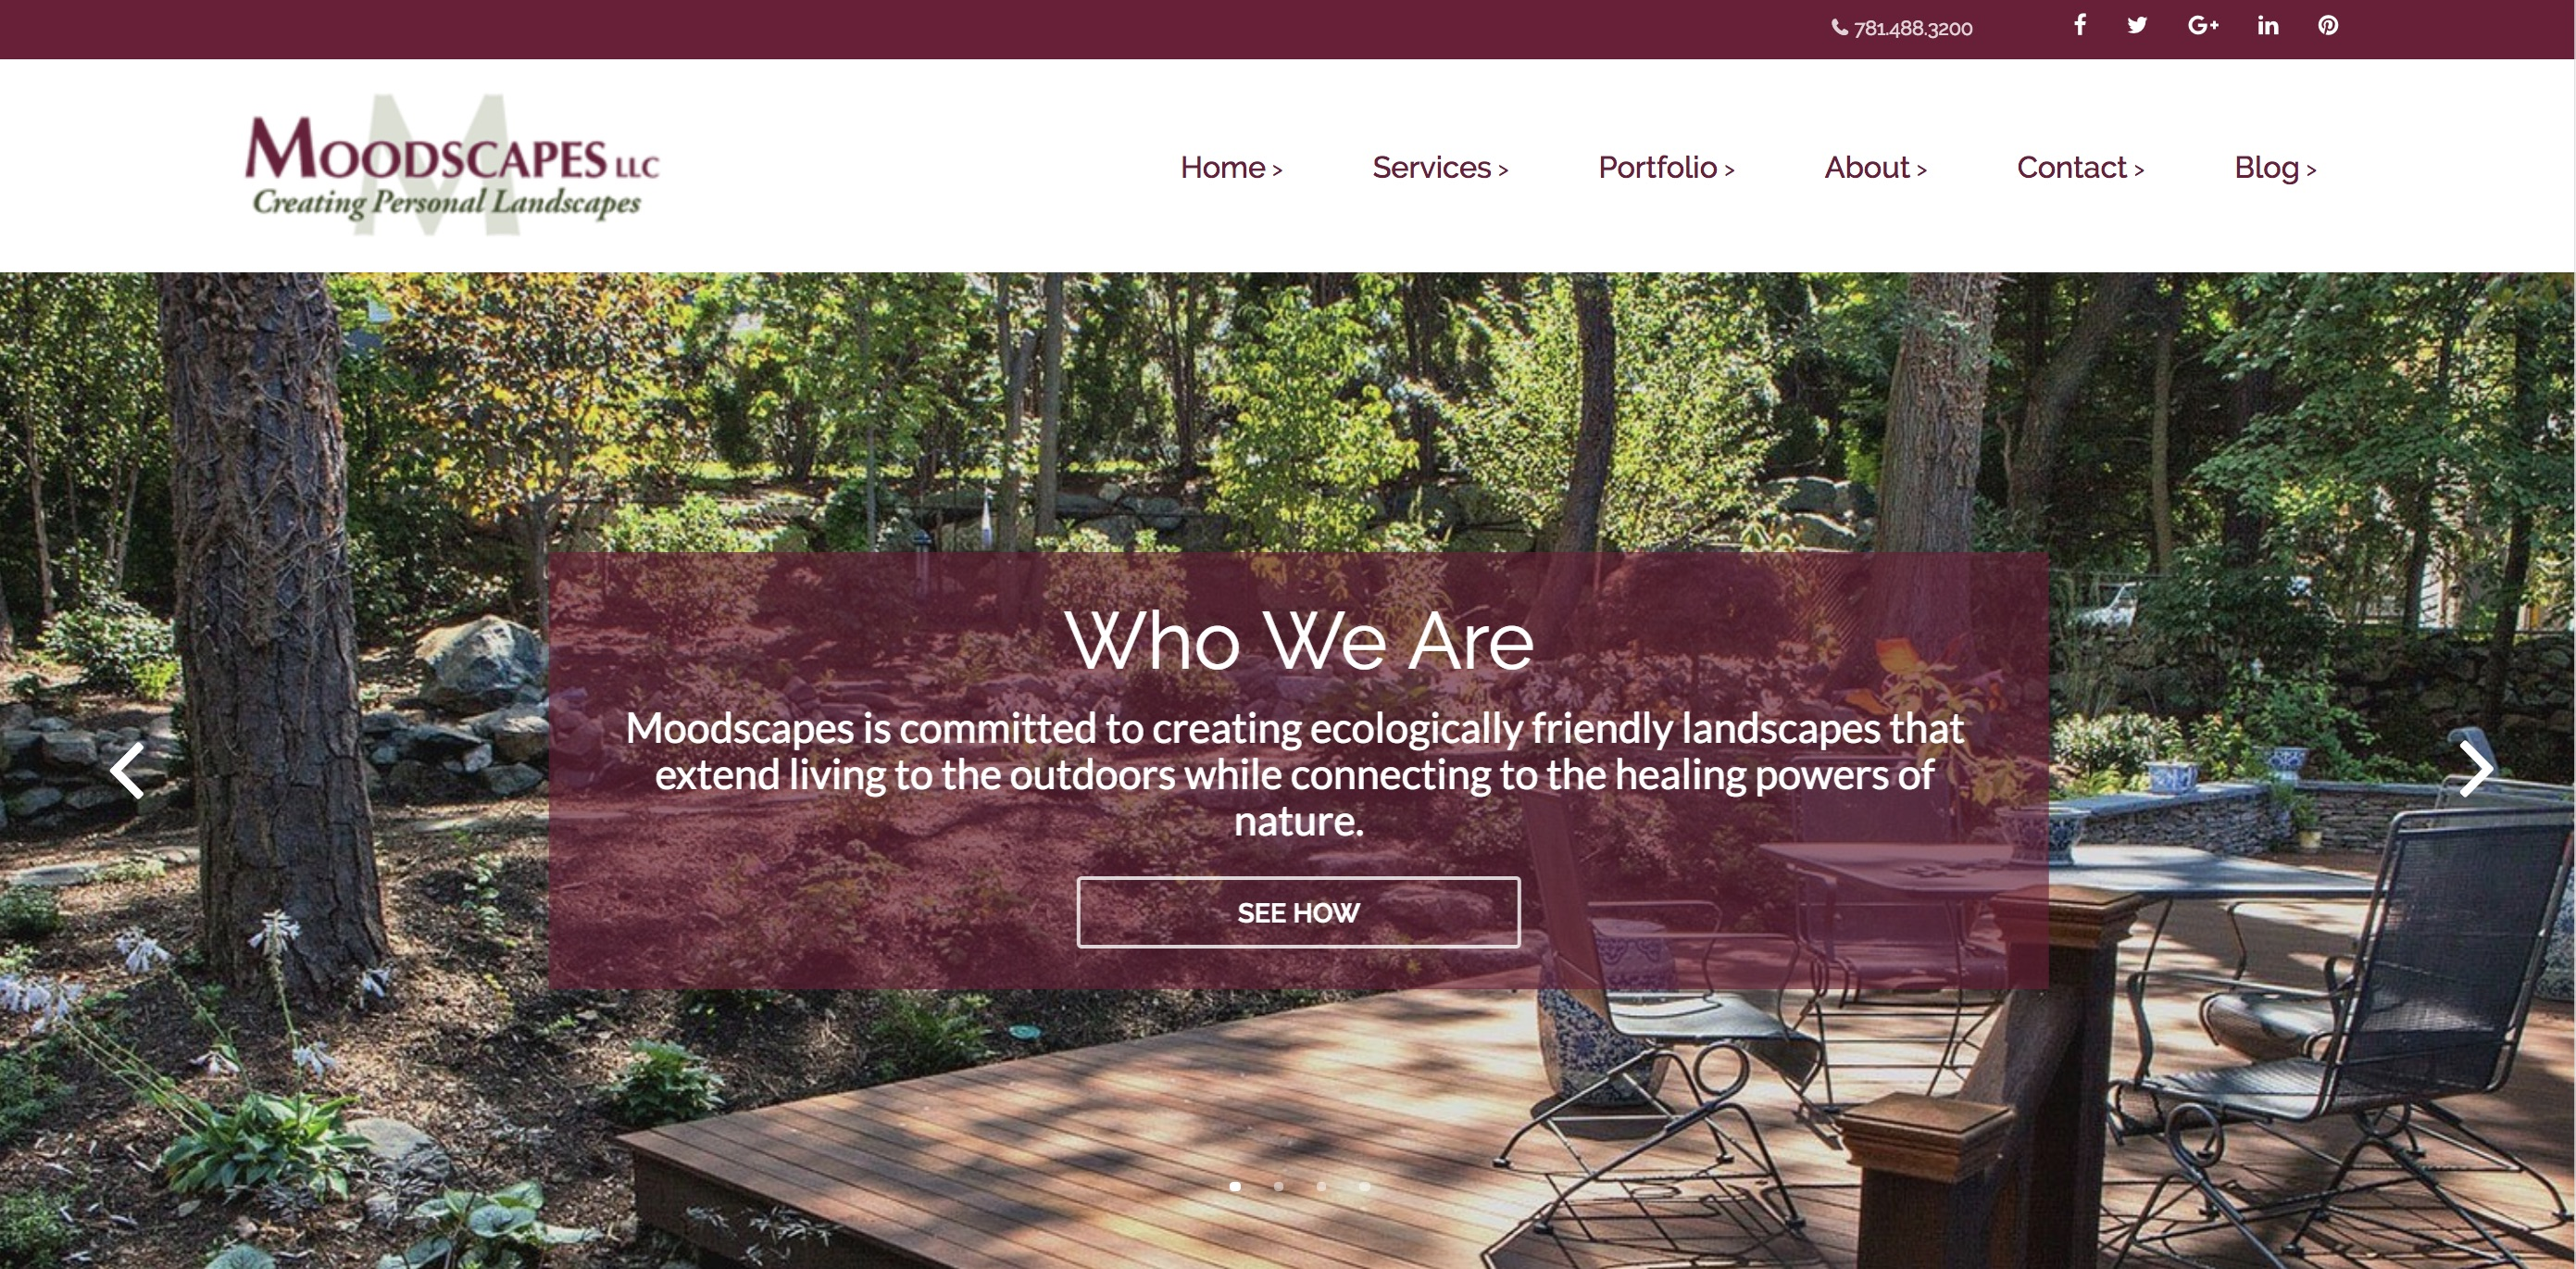 moodscapes landscape design company partners with Bristol Strategy